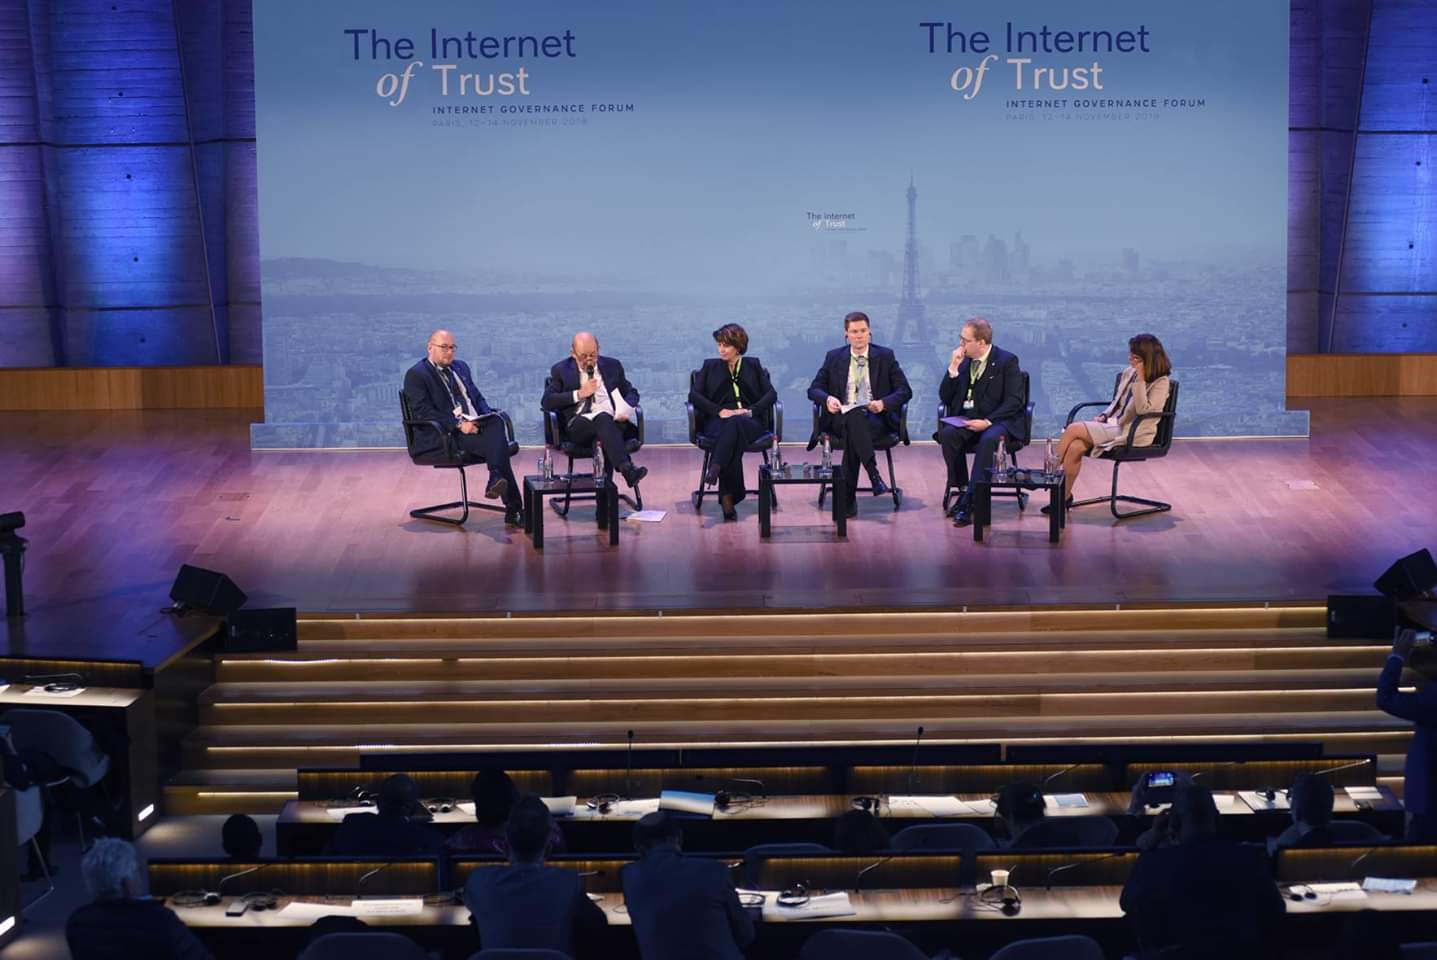 Panel moderated by Pierre Bonis (Chief Executive Officer of Afnic) on strengthening internet governance and the IGF during the 2018 World IGF in Paris.